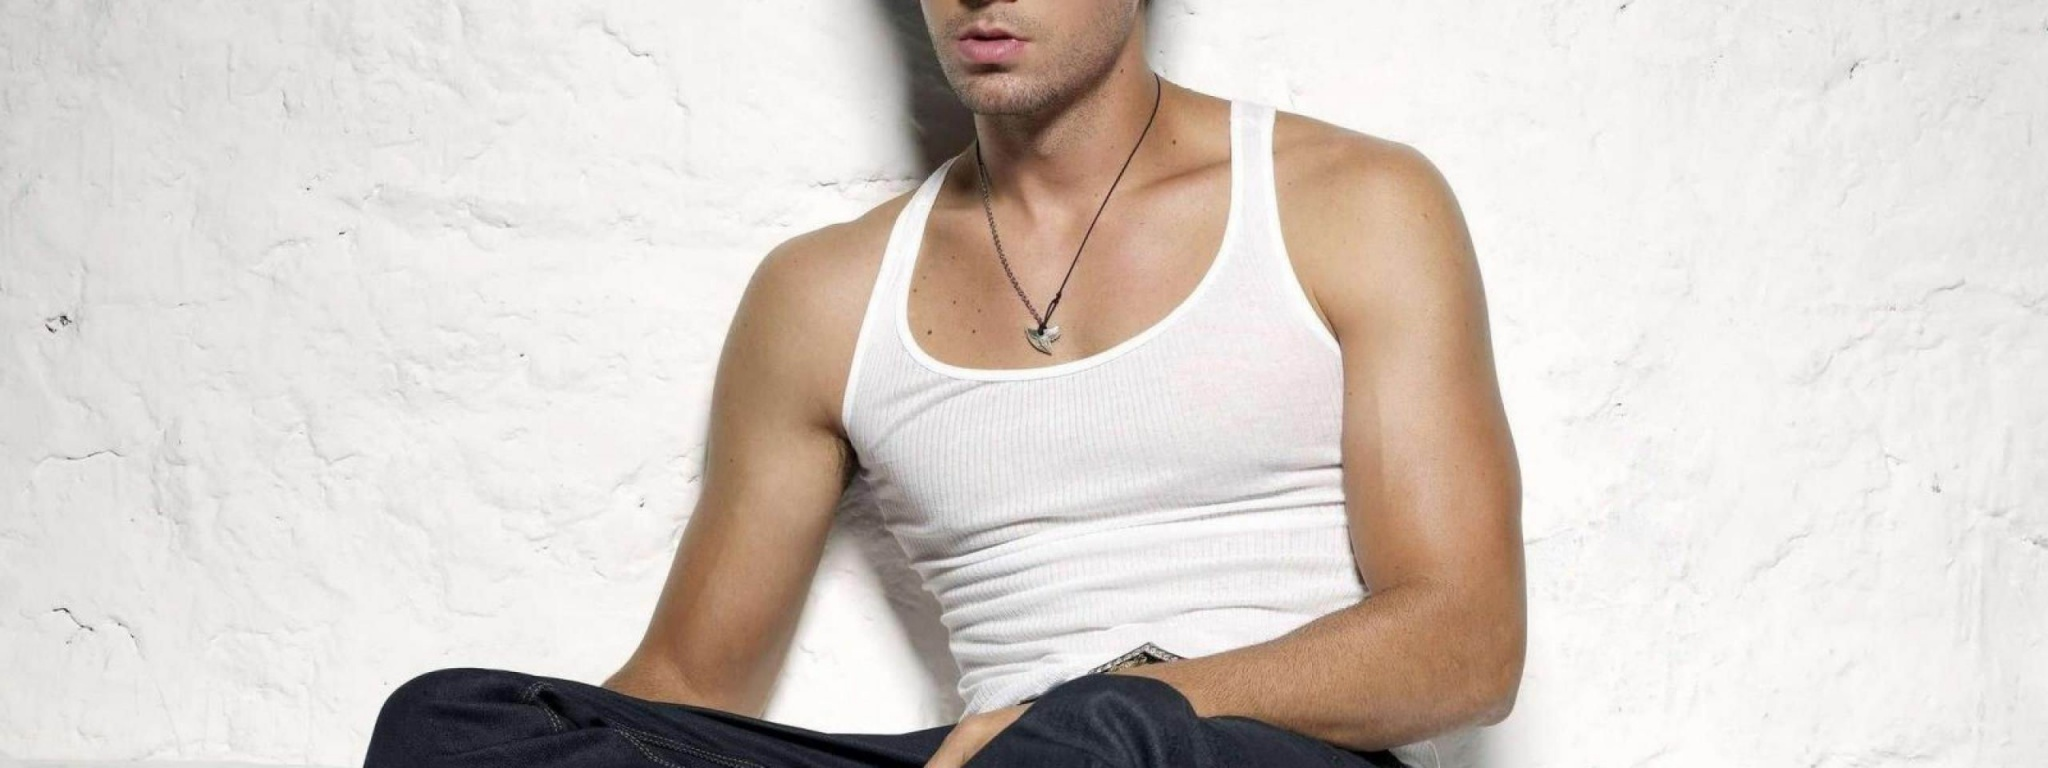 Celebrity Enrique Iglesias Wallpaper Muisc Man